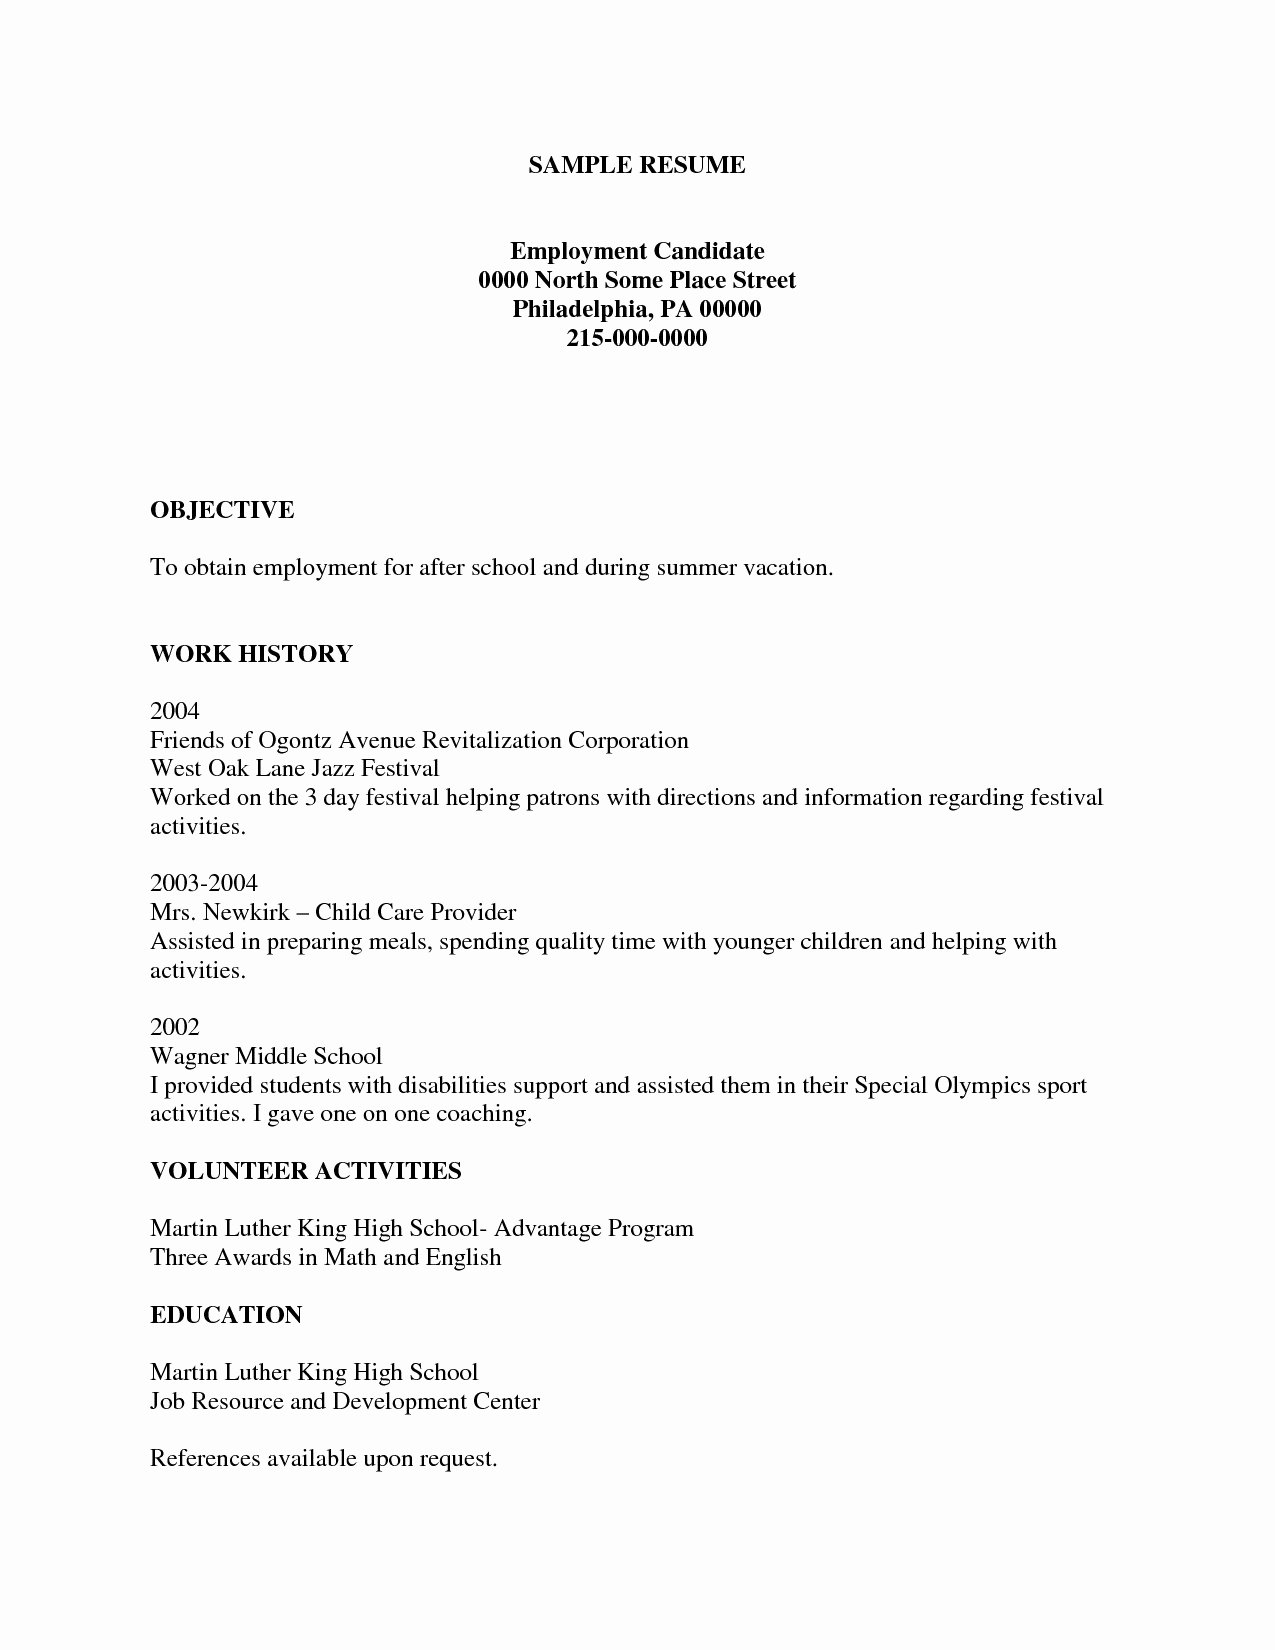 Resume Template for Kids Unique Resume Template for Kids